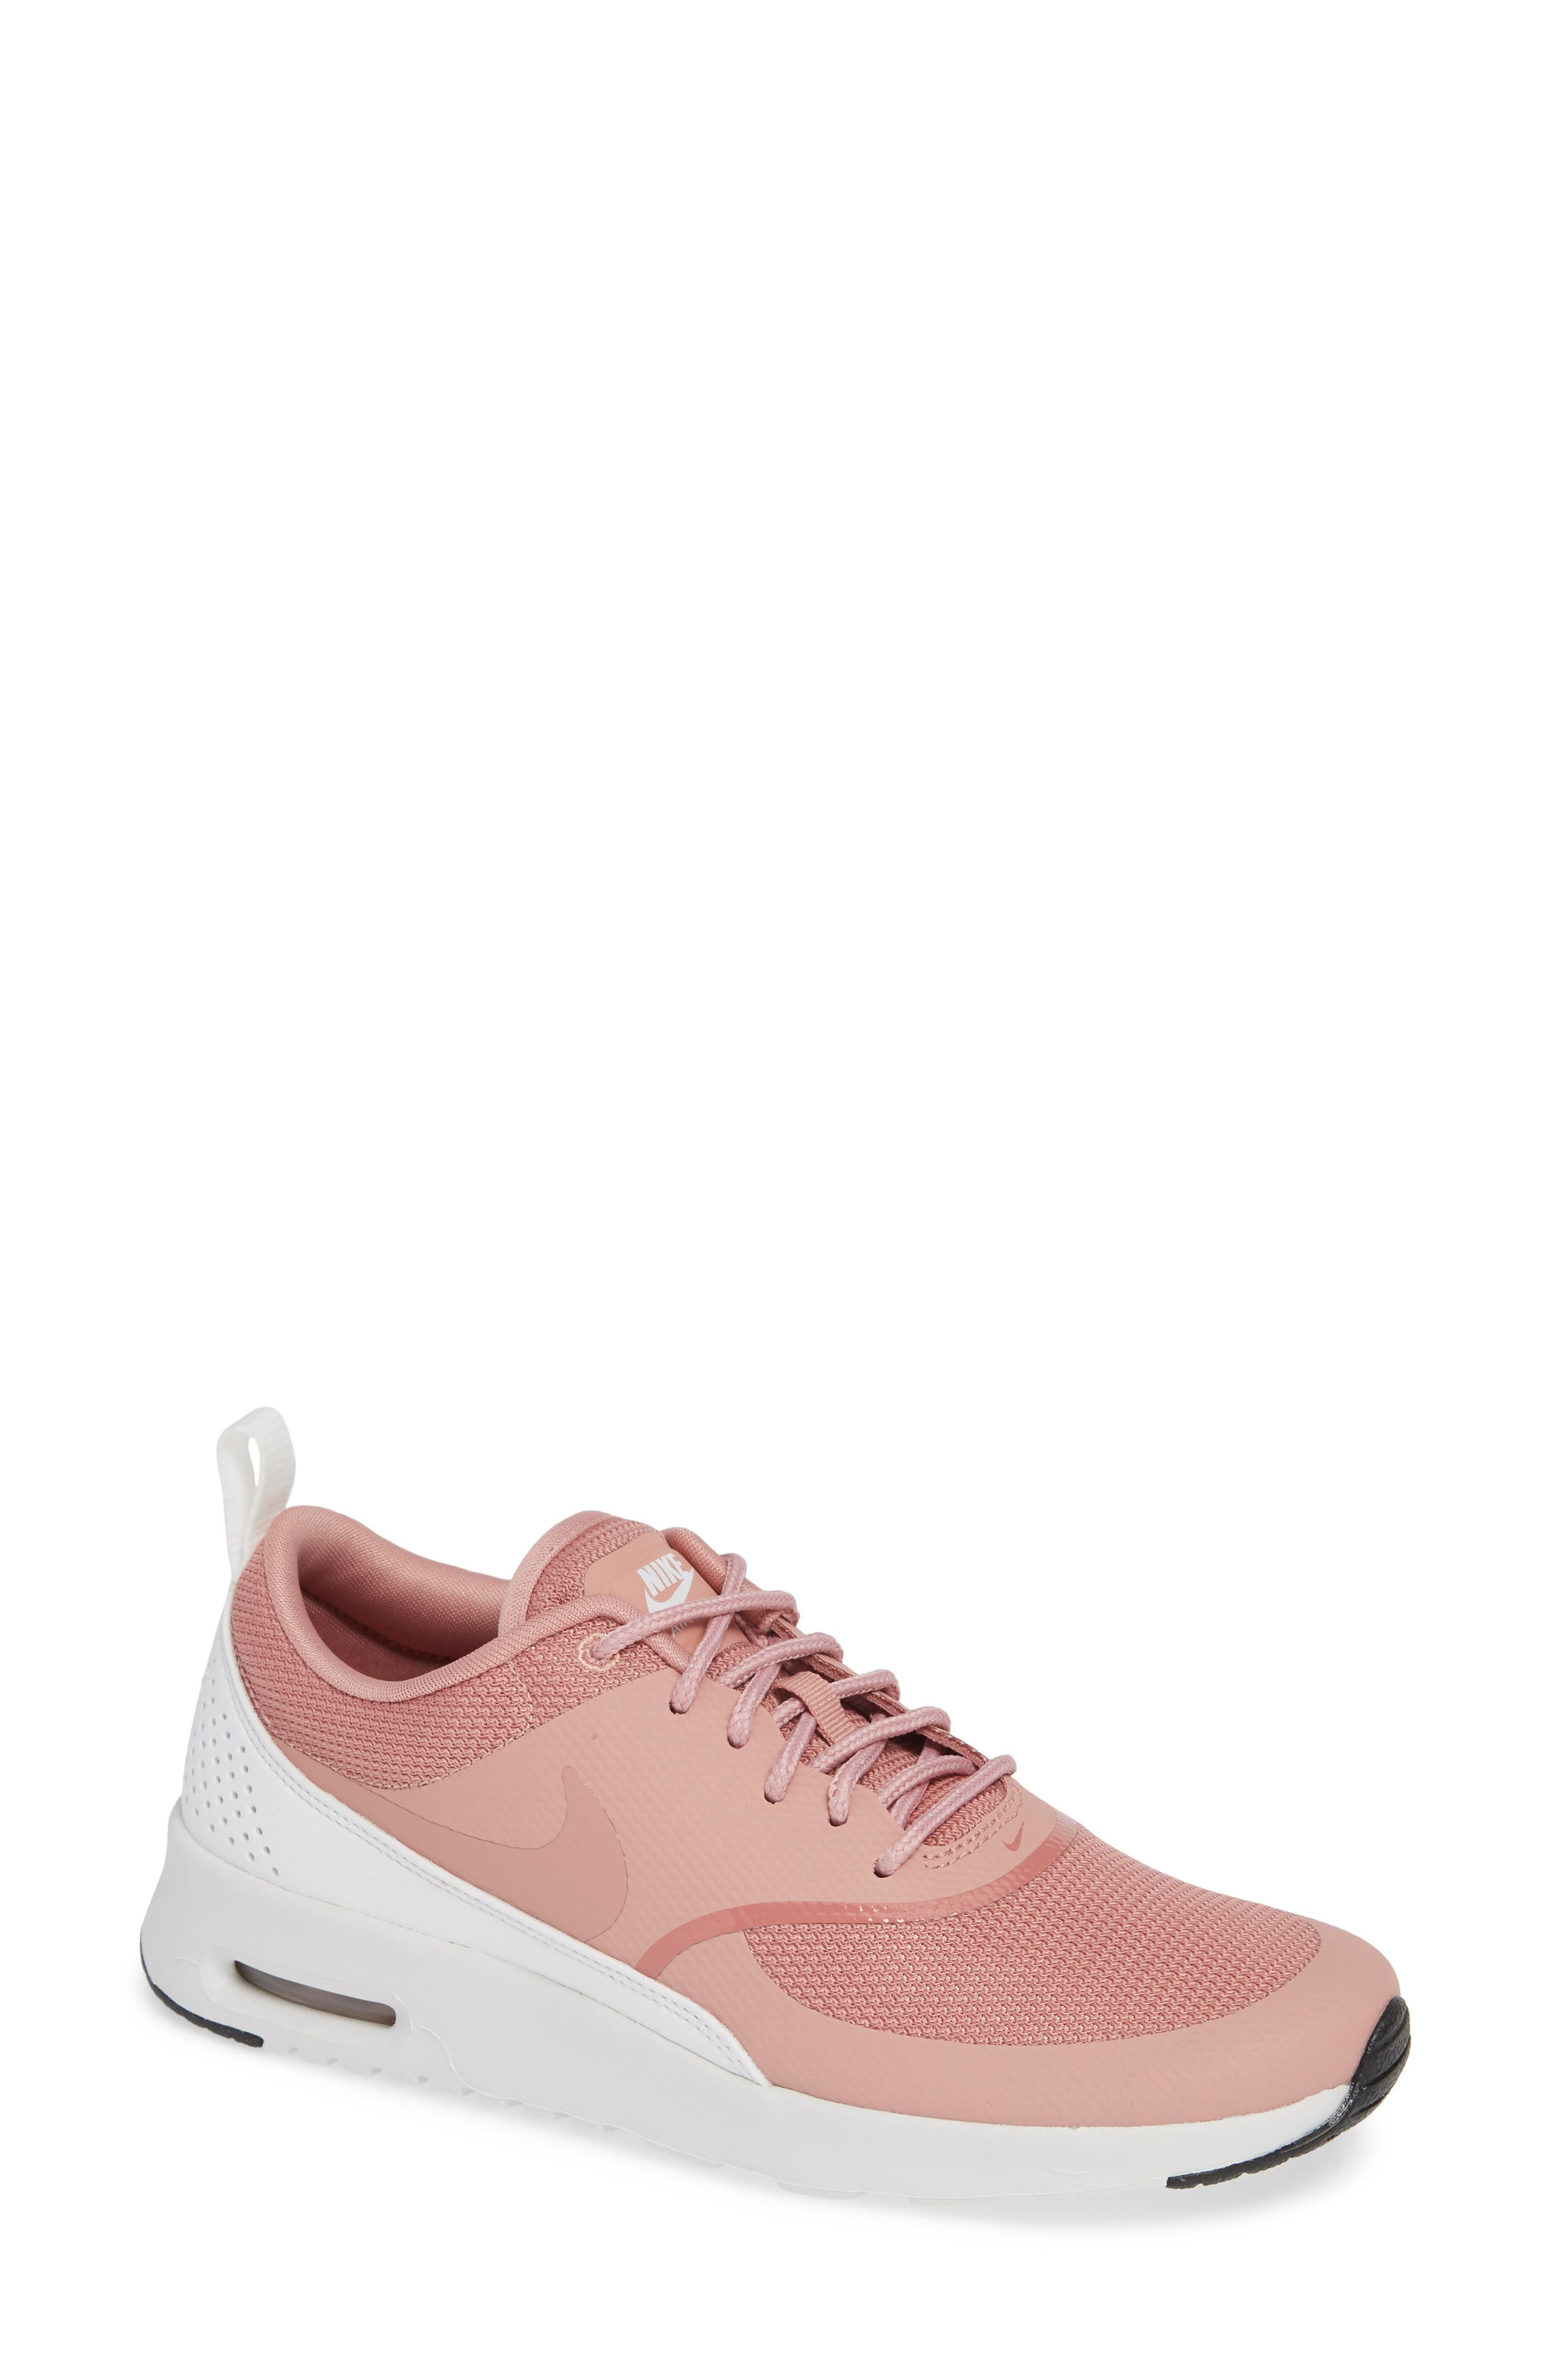 Air Max Thea Sneaker,                         Main,                         color, RUST PINK/ WHITE/ BLACK